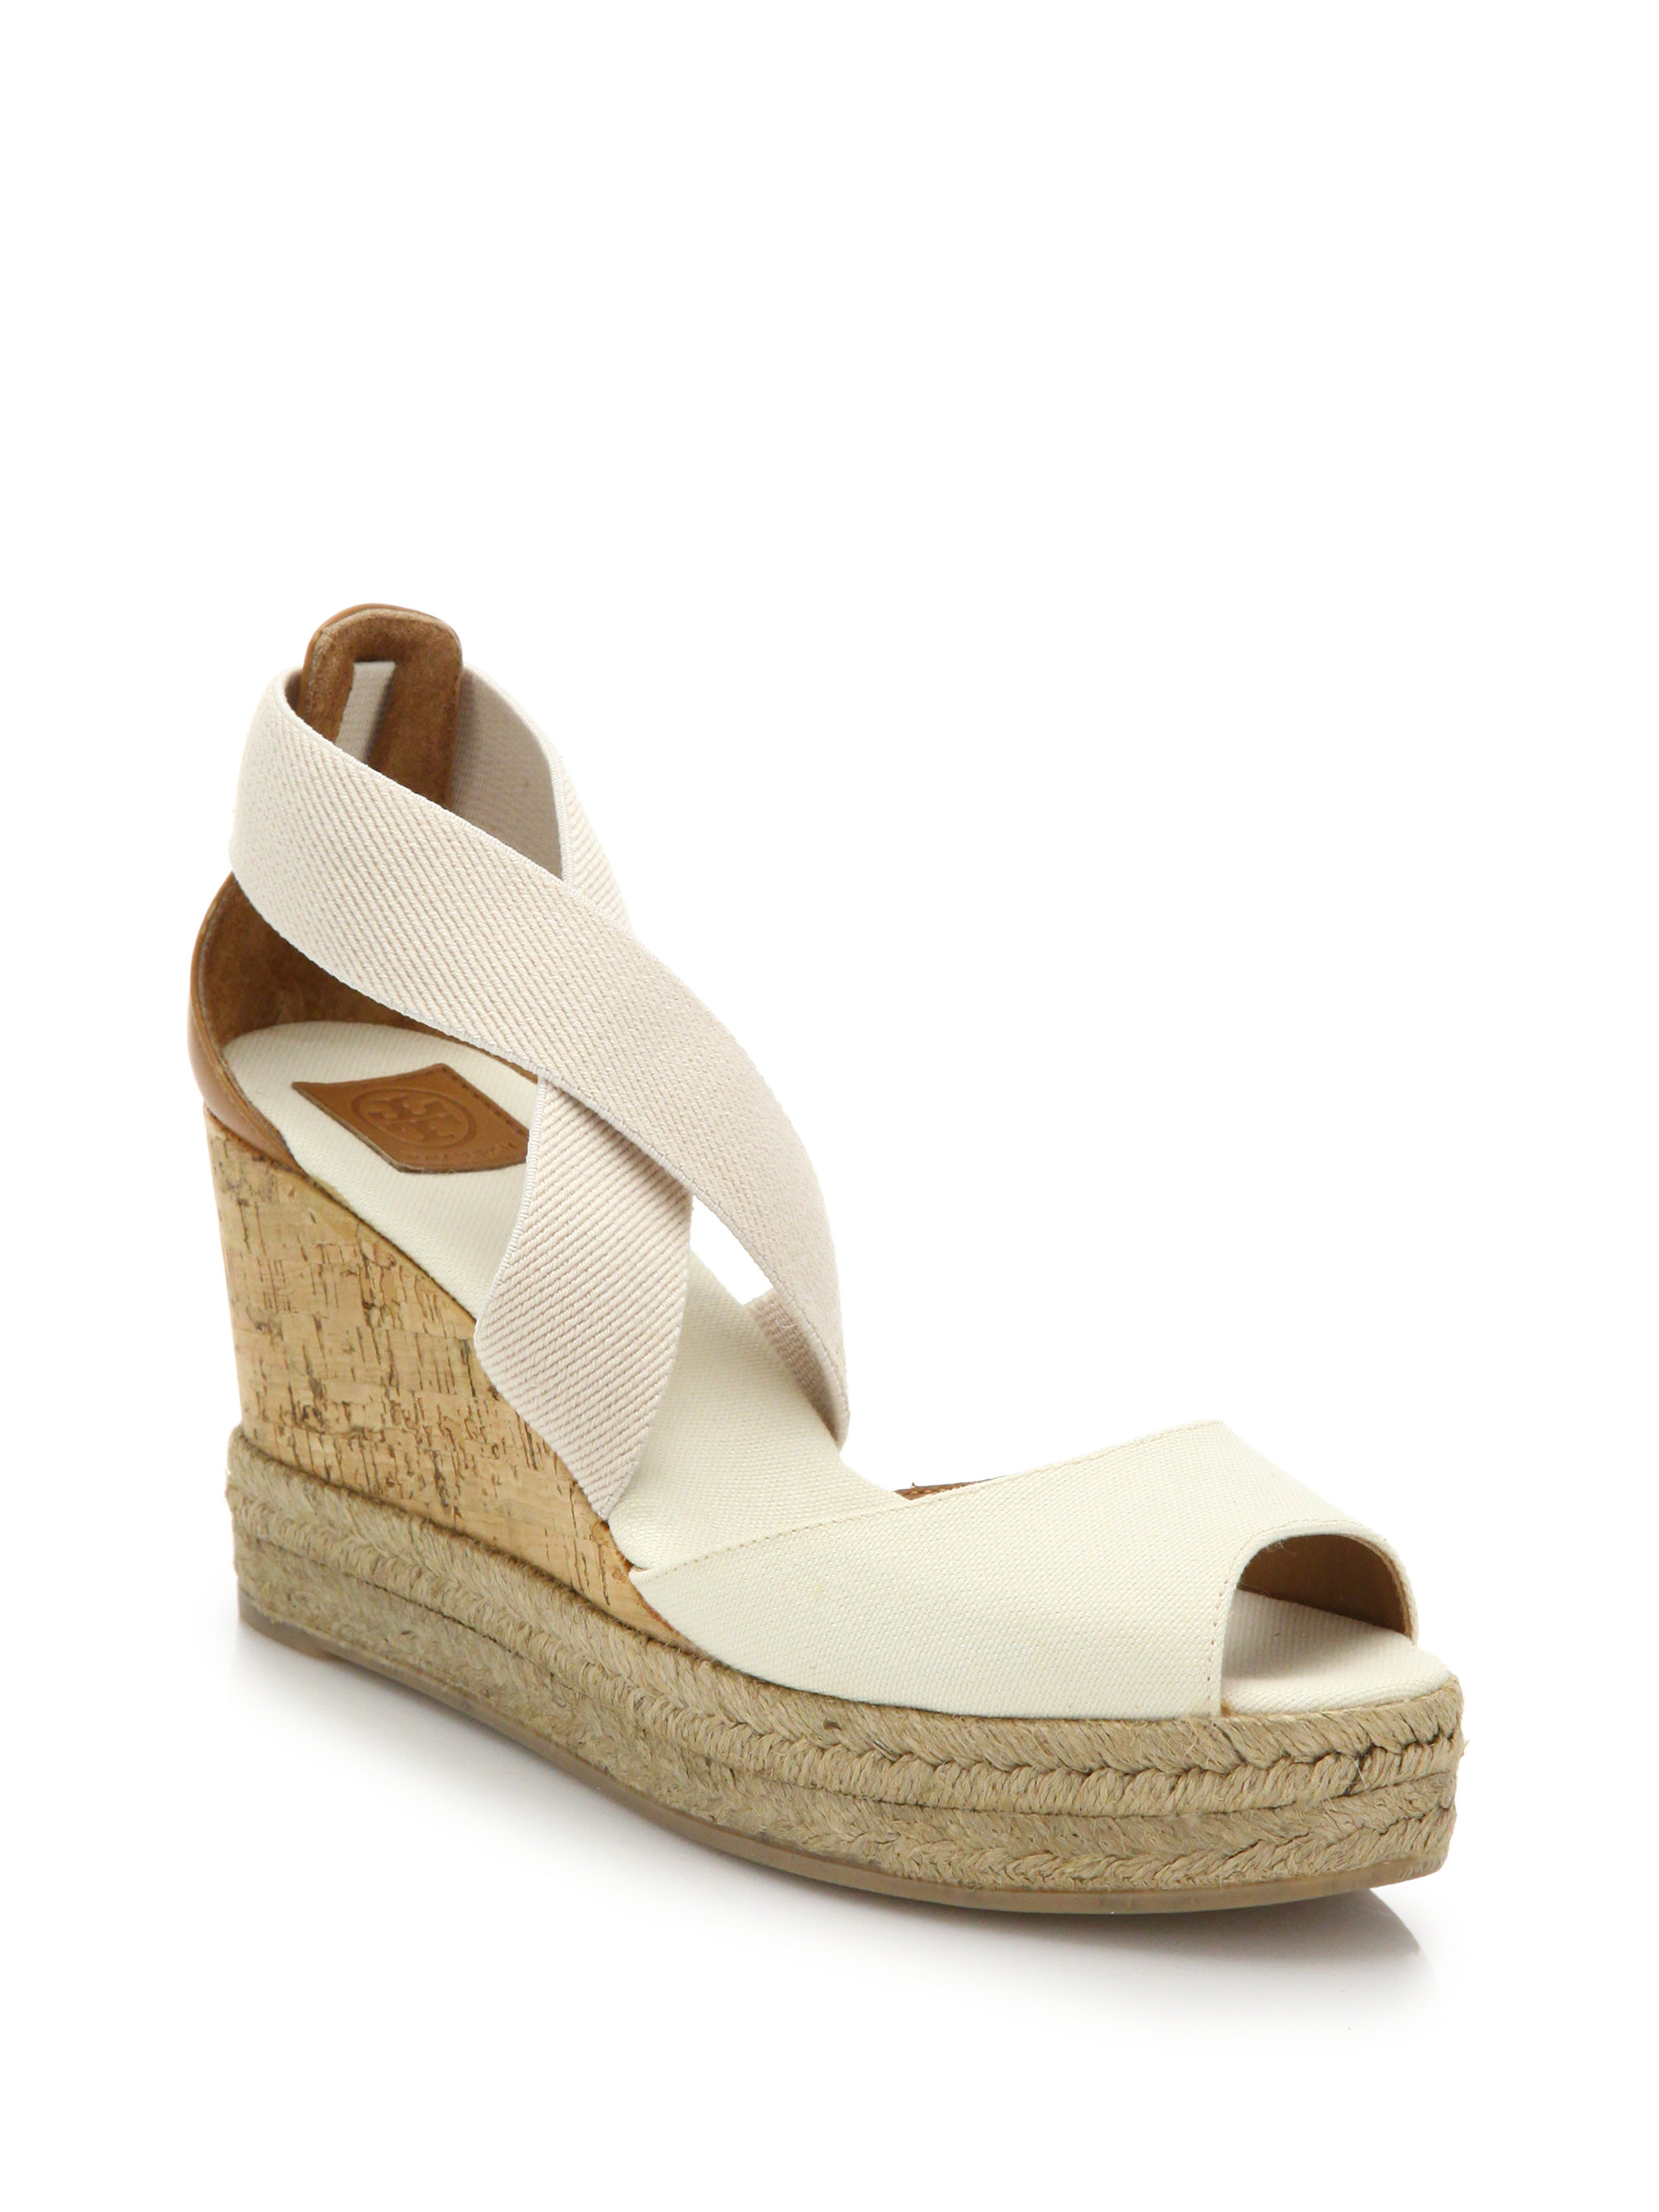 92372ed463e Lyst - Tory Burch Canvas   Cork Espadrille Wedge Sandals in White